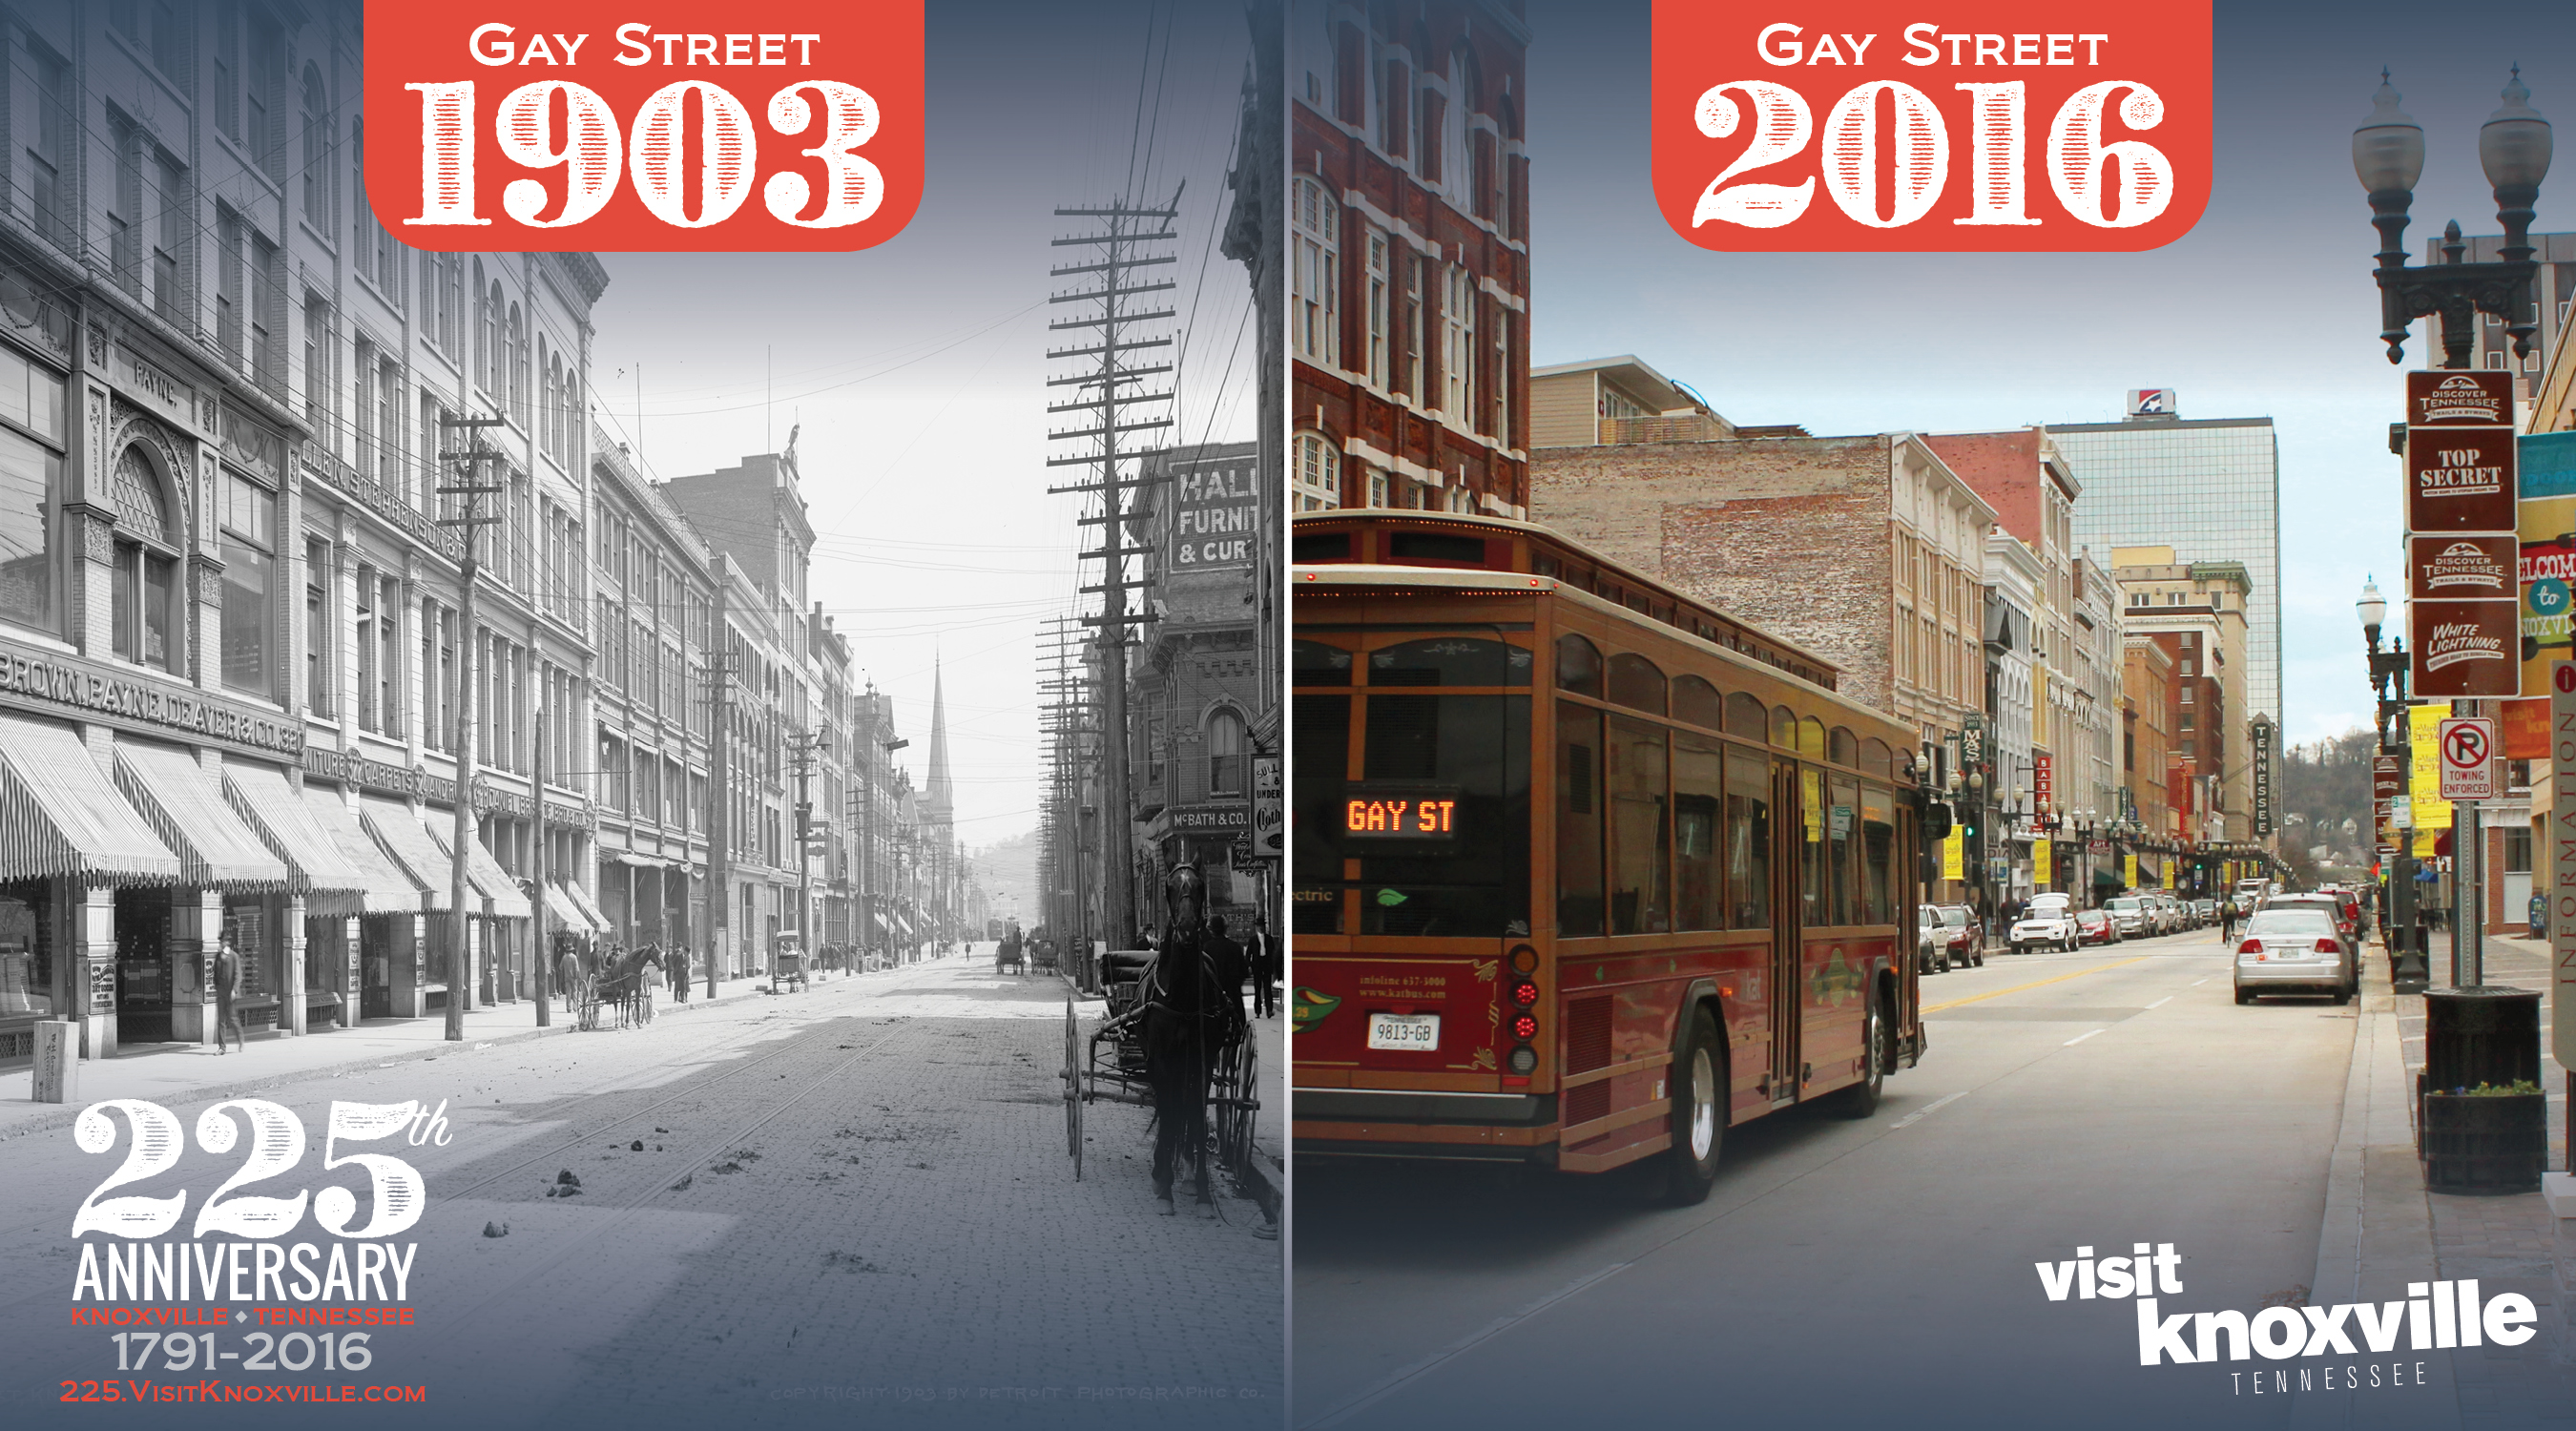 Gay Street 225 now and then